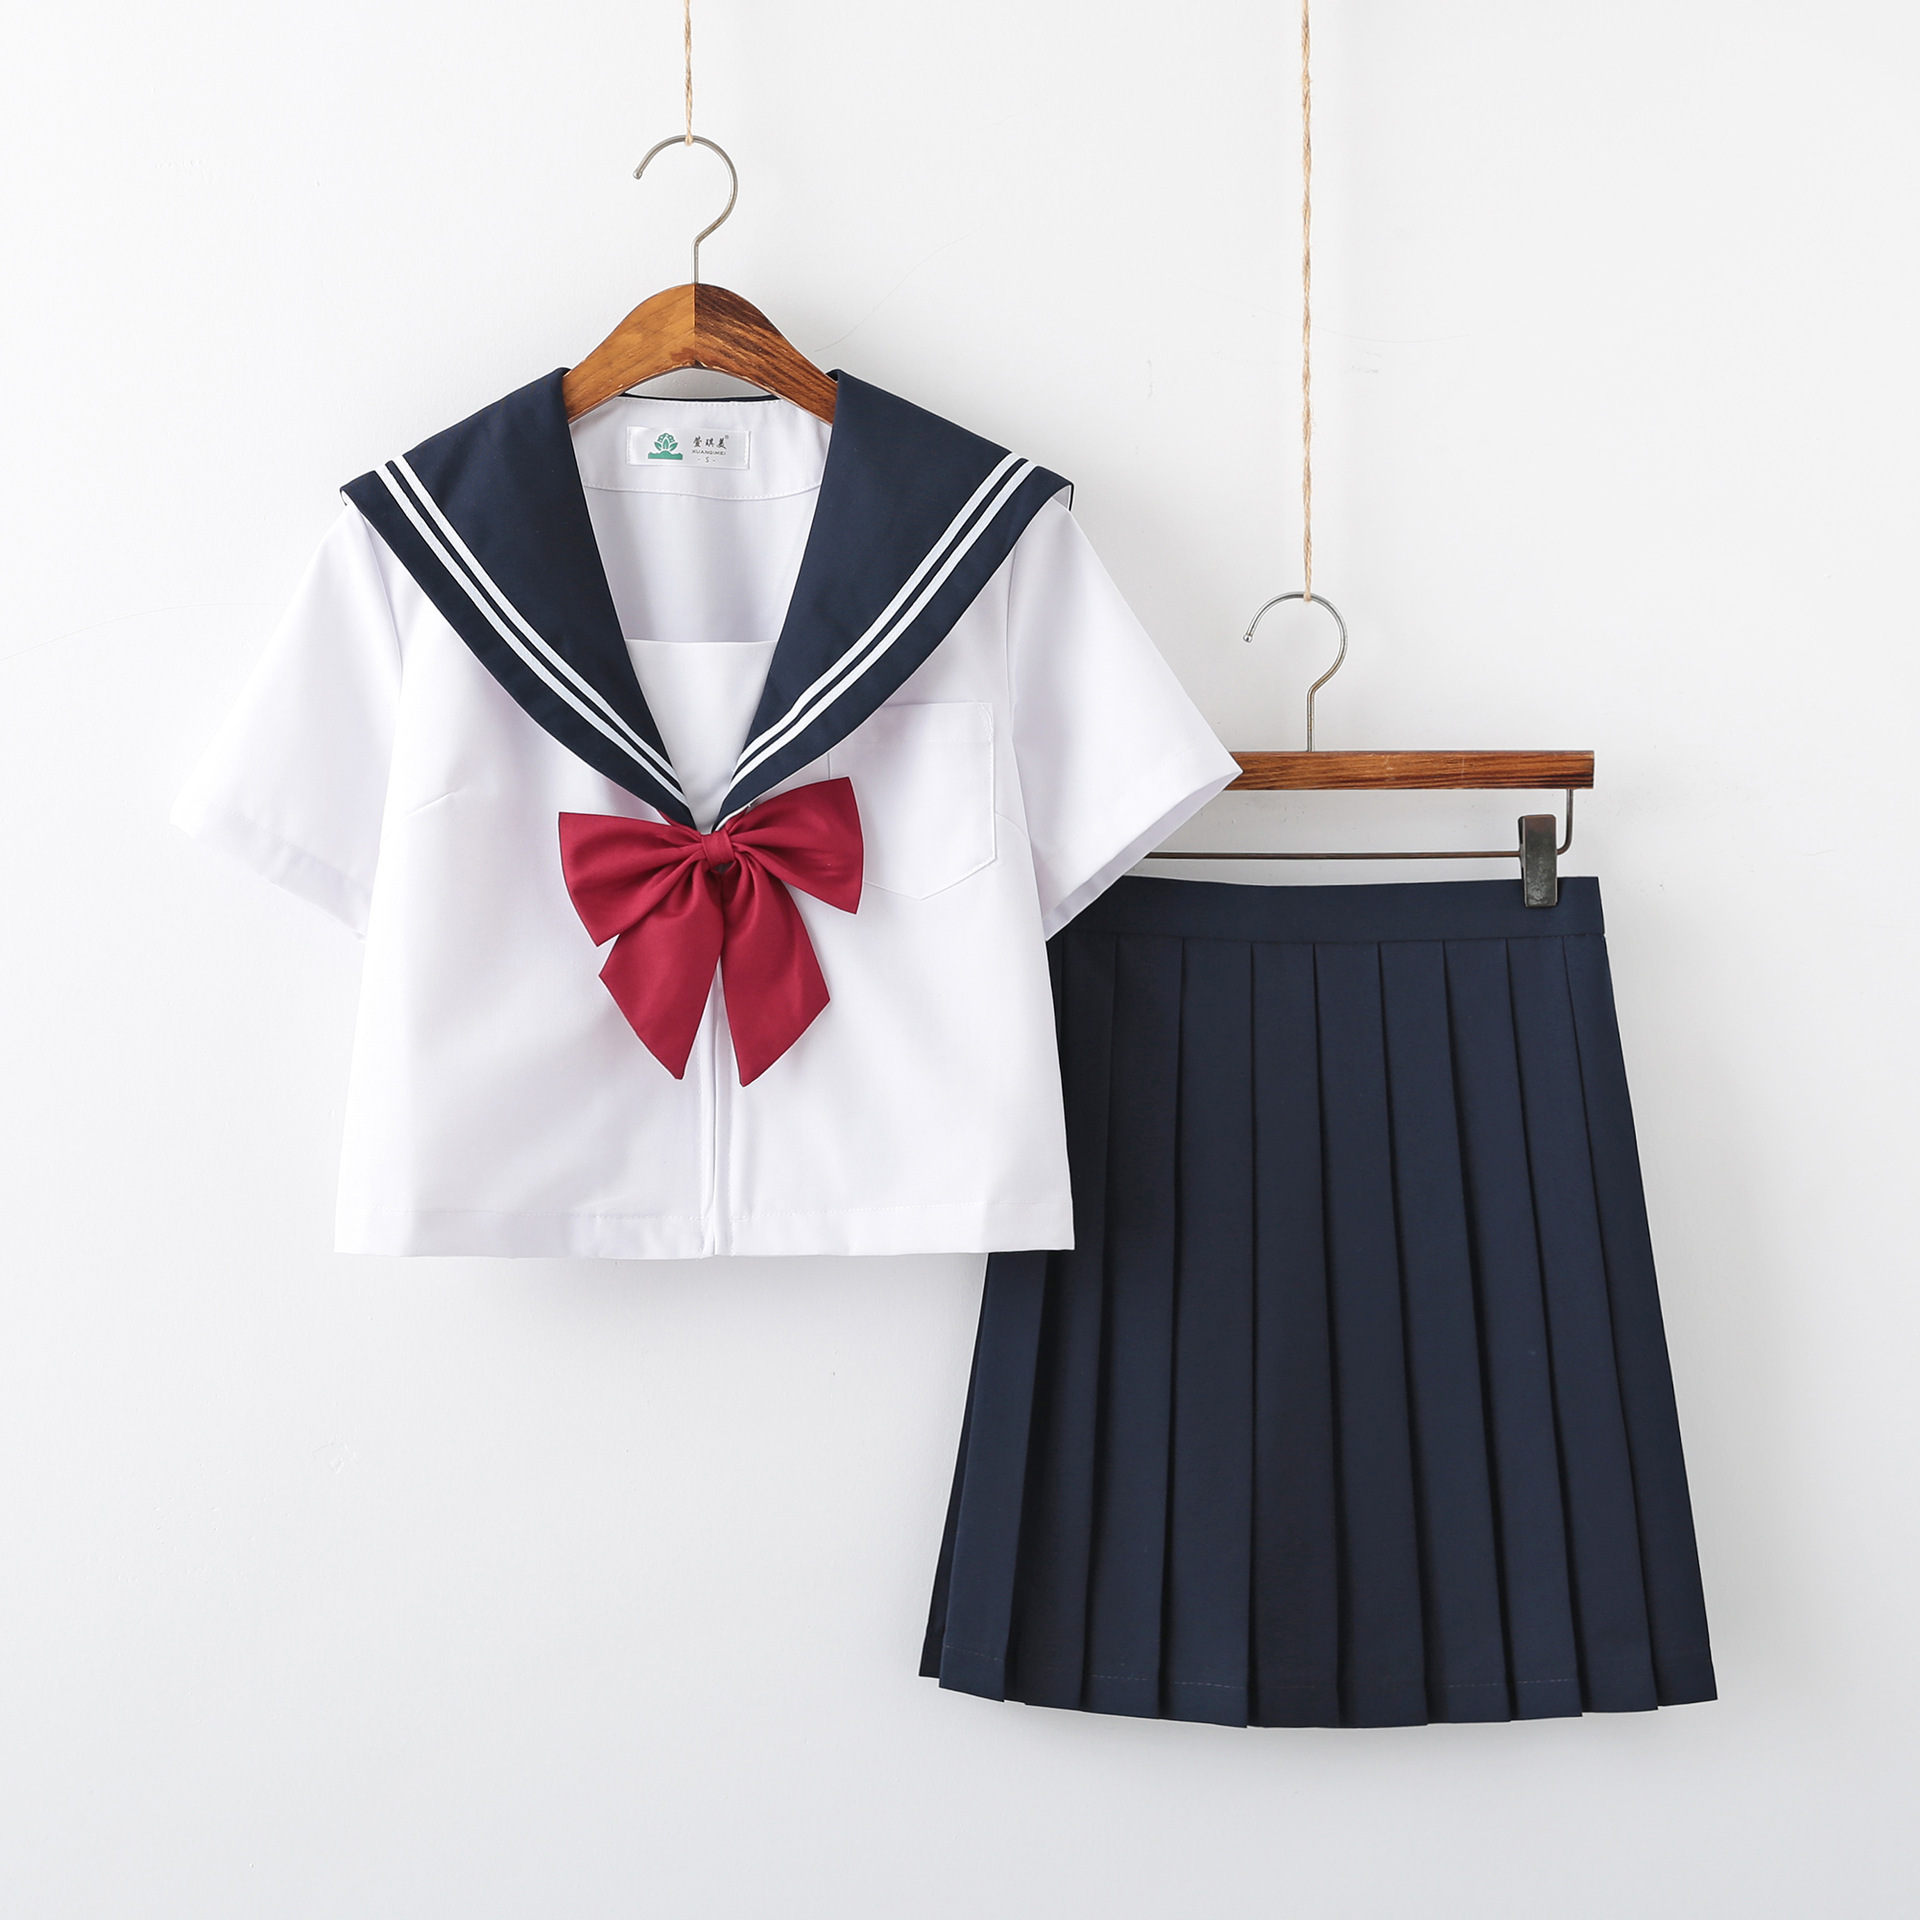 Jk Uniform Sailor Suit Female White Two Basic Models of Japanese Three-piece Suit Class Service College Wind School Girl Outfit